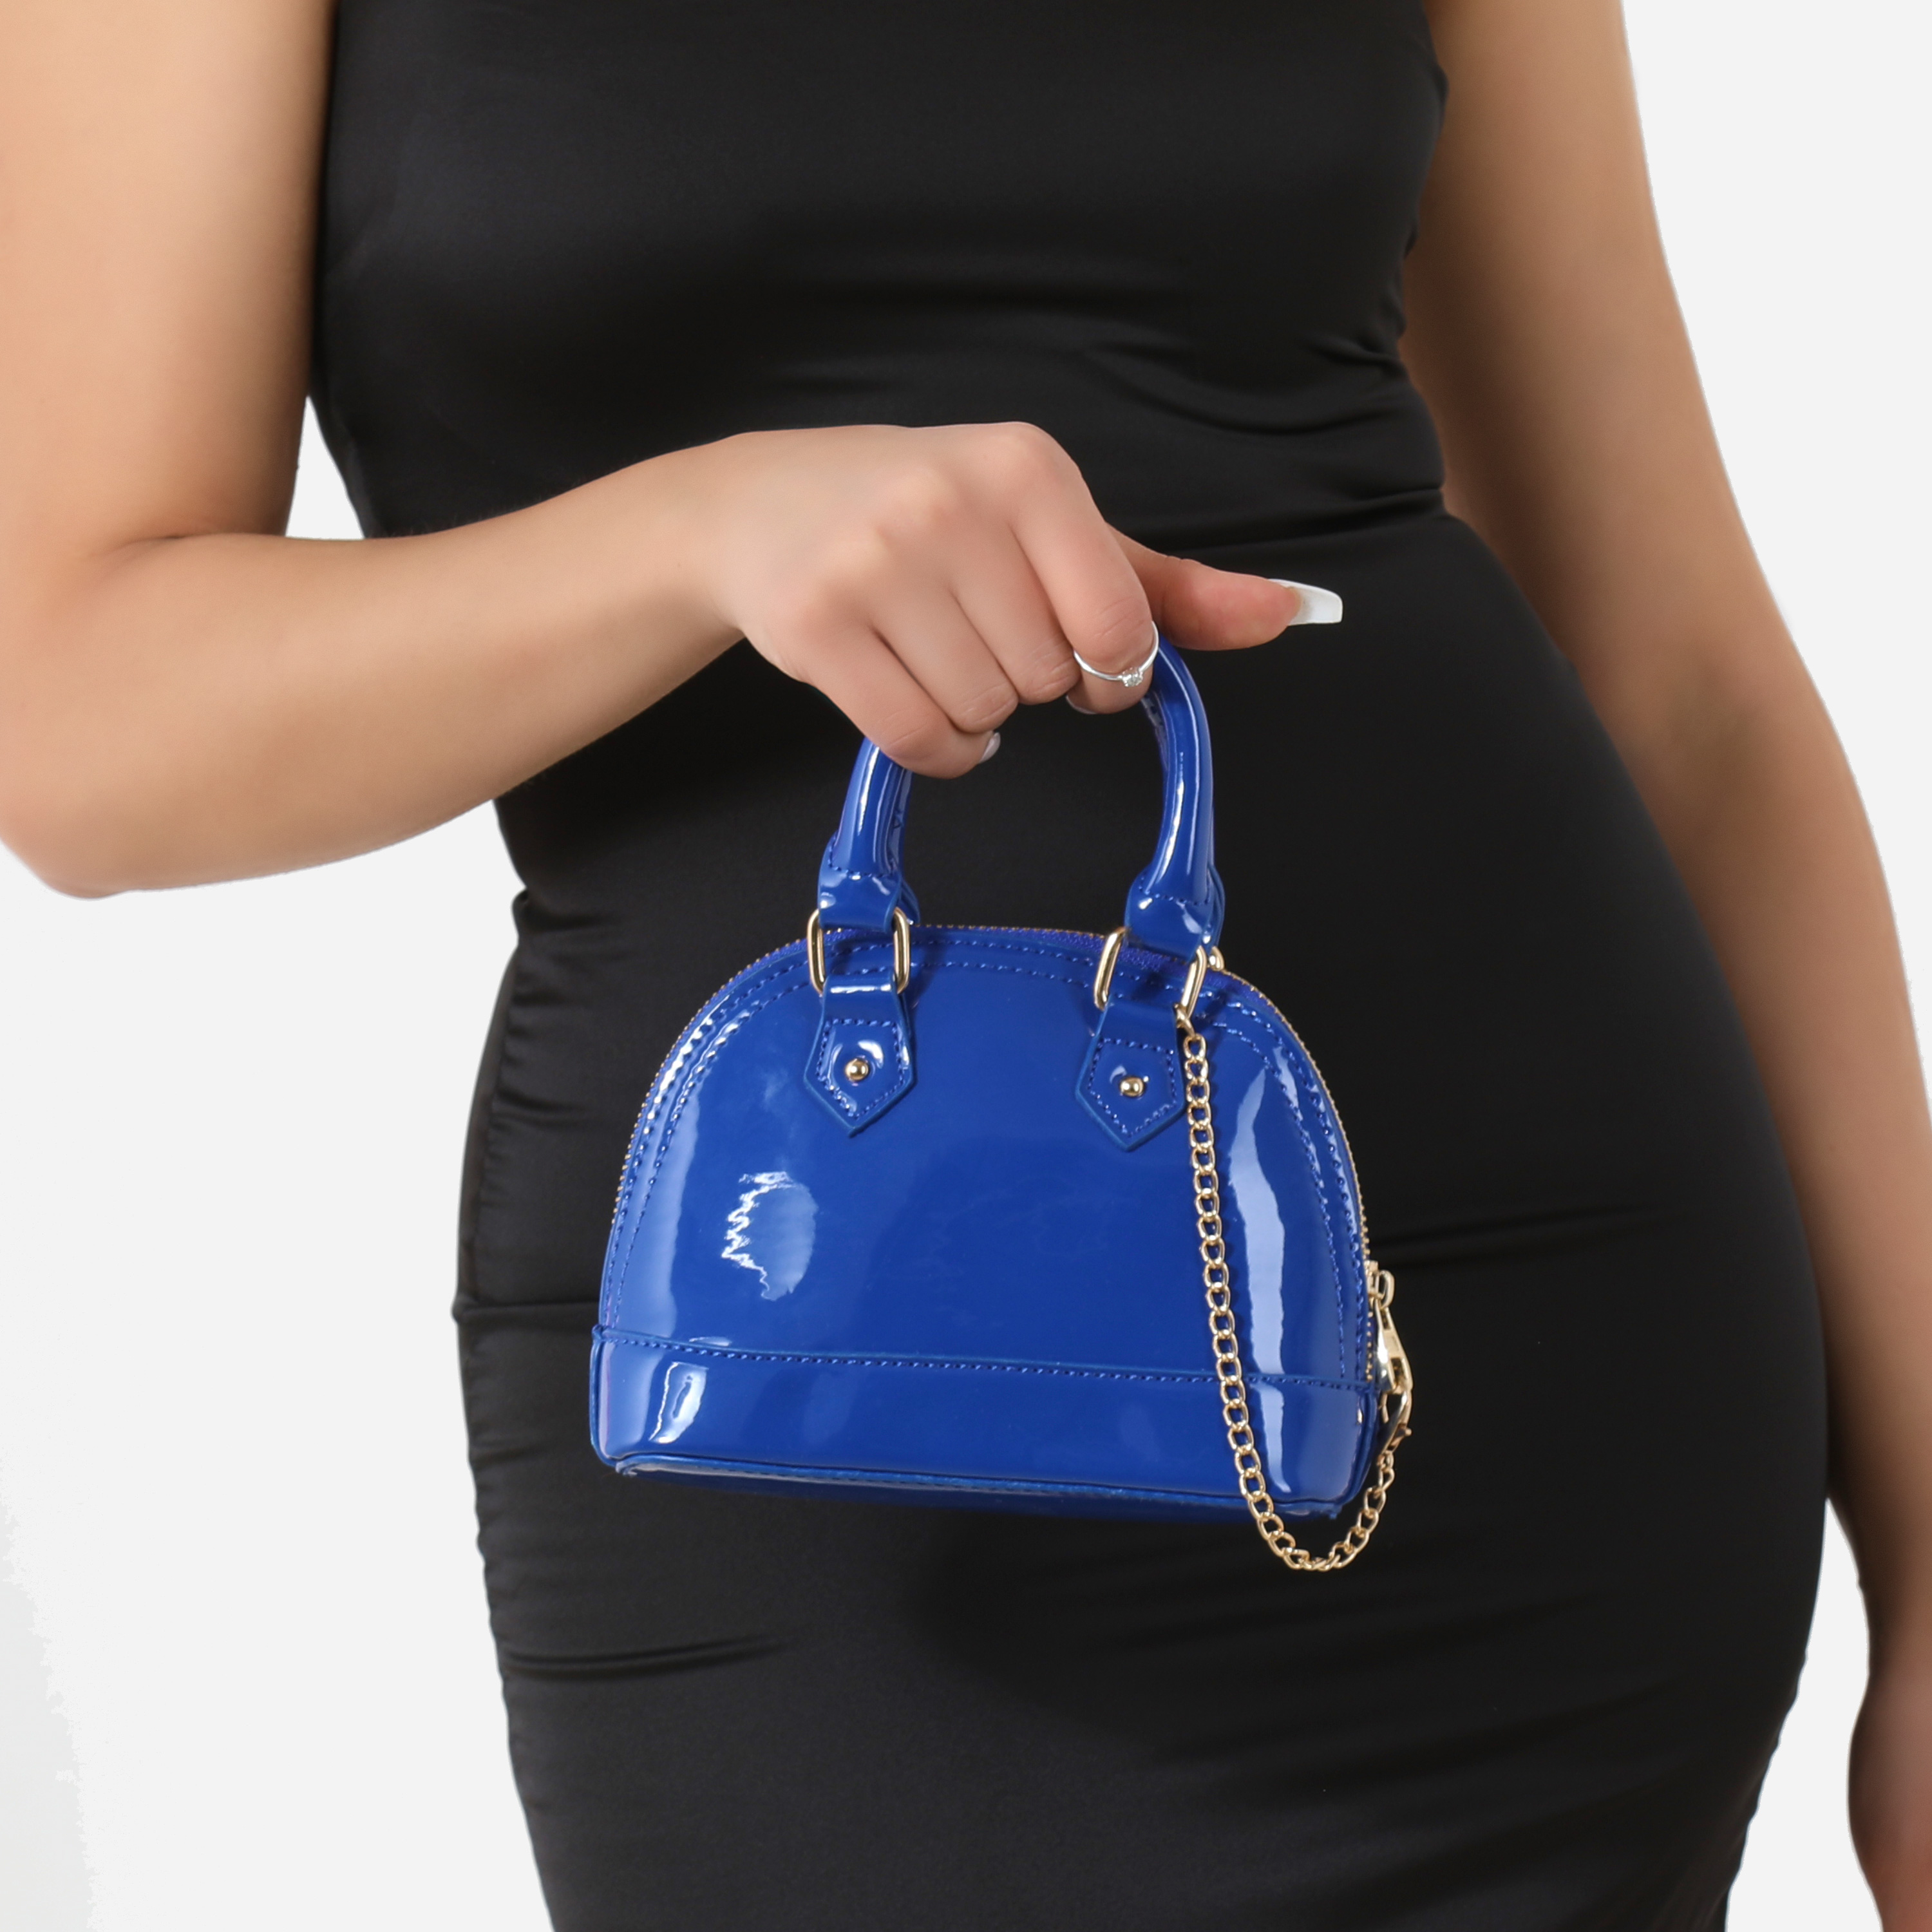 Chain Detail Grab Bag In Blue Patent